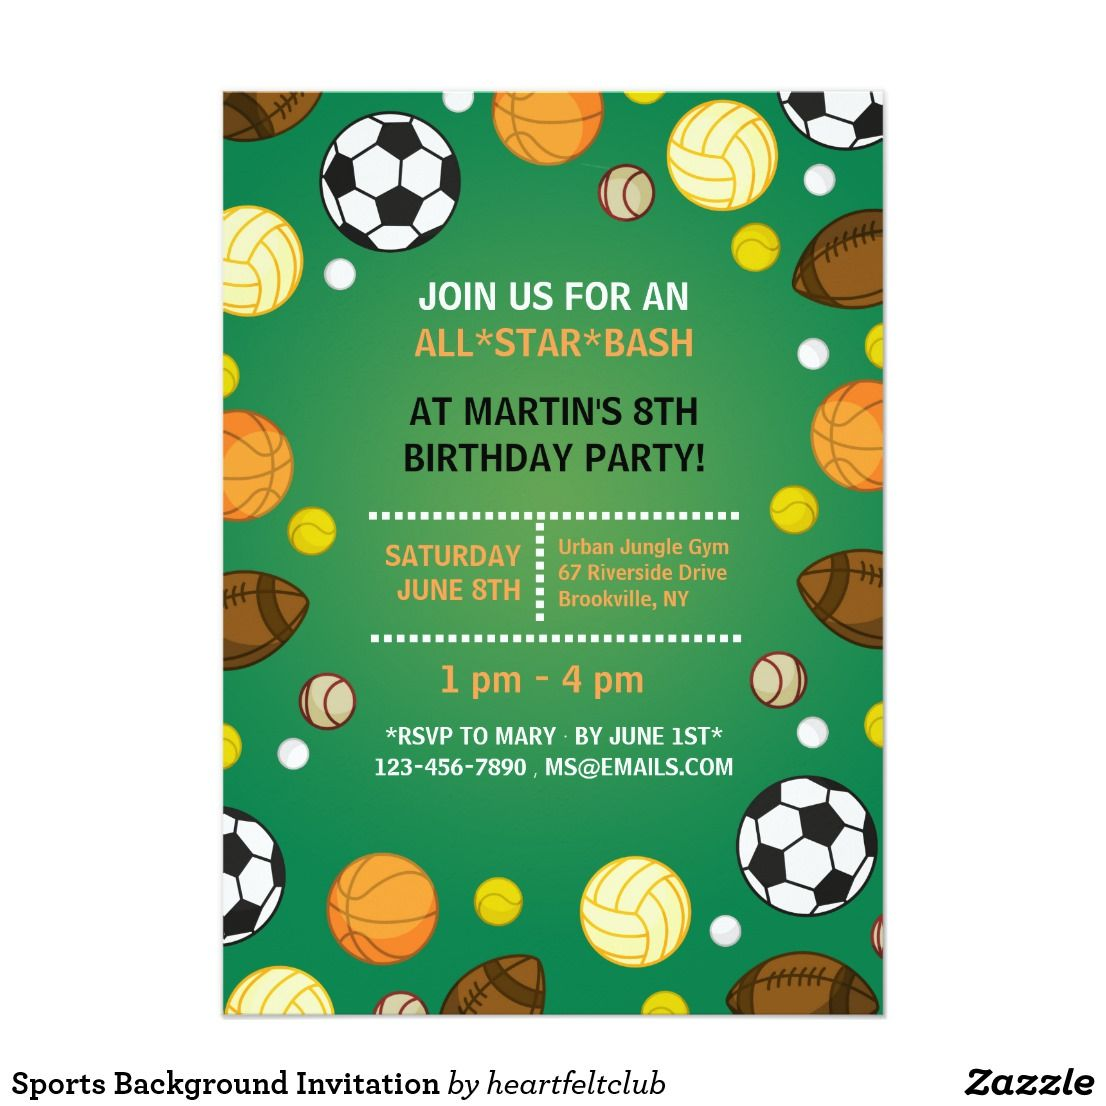 Sports Background Invitation Zazzle Com With Images Sports